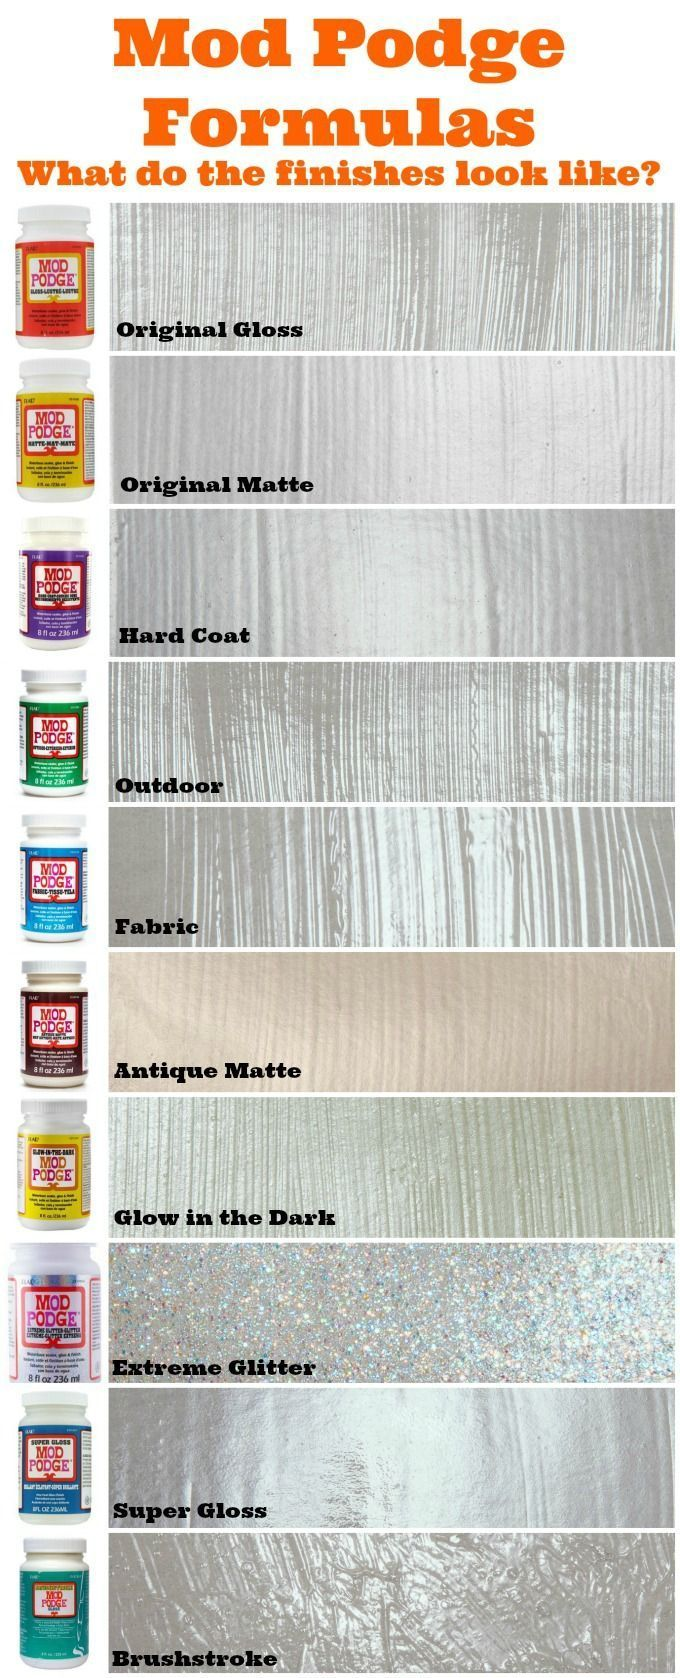 Mod Podge formulas - learn what the finishes look like - Mod Podge Rocks